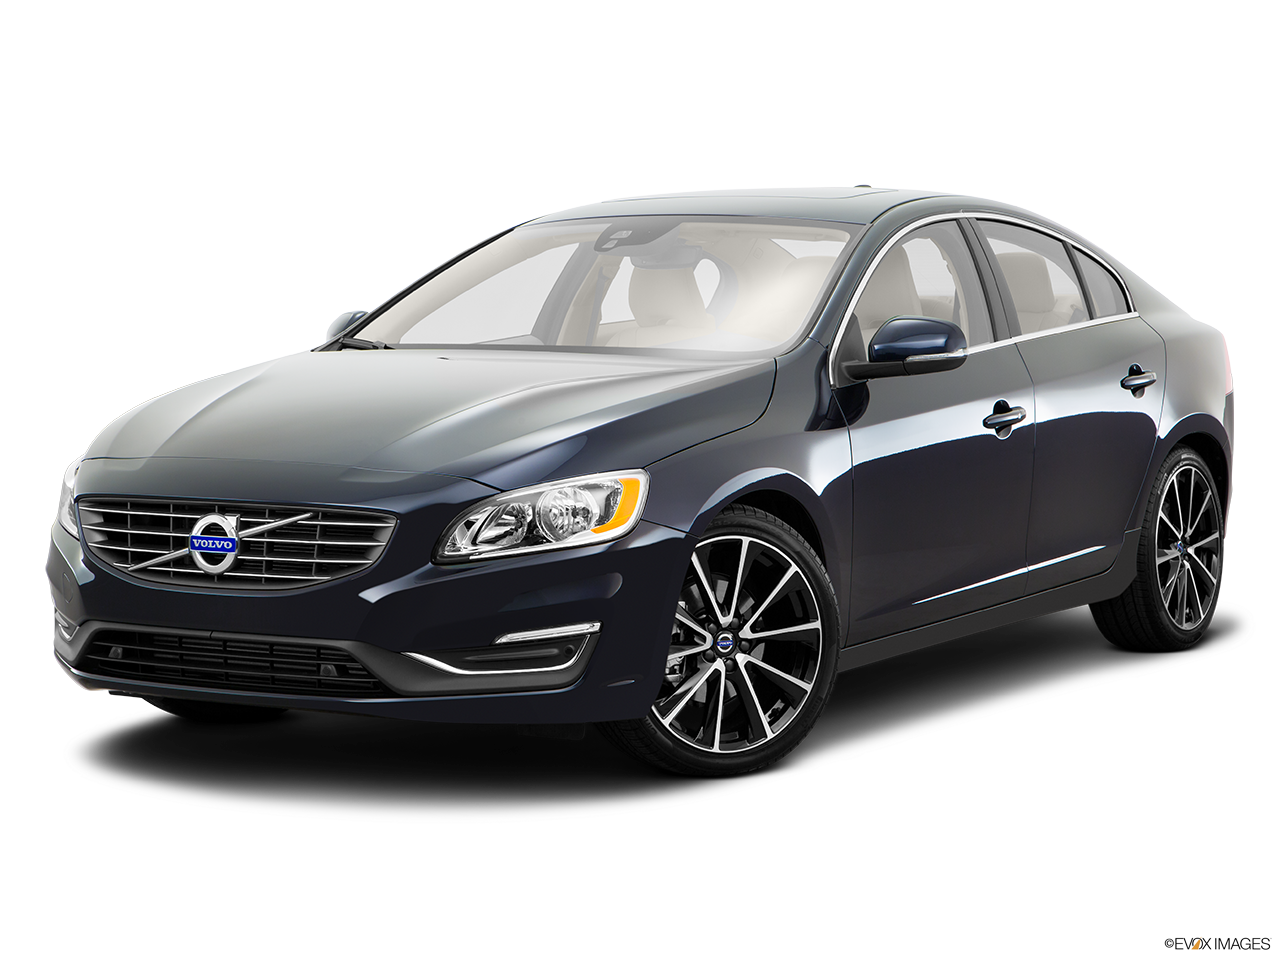 2016 Volvo Xc70 >> 2016 Volvo S60 dealer serving Los Angeles | Galpin Volvo